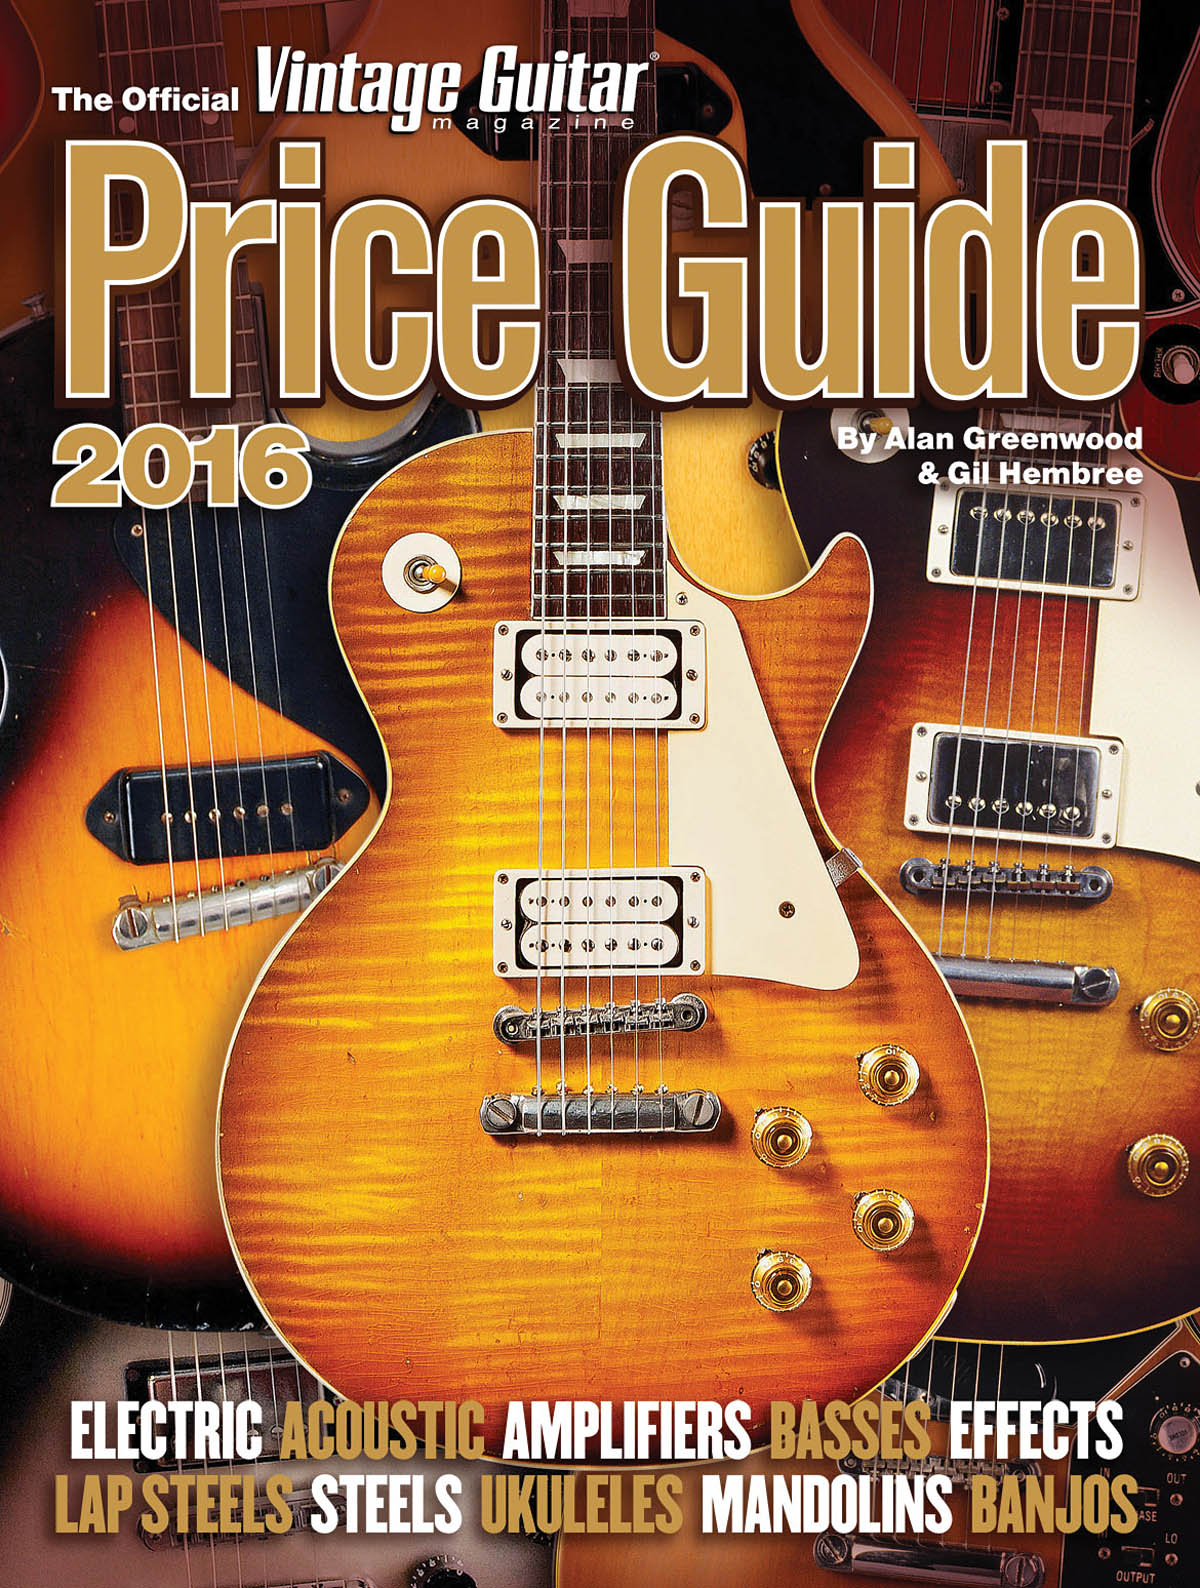 Alan Greenwood Gil Hembree: Official Vintage Guitar Magazine Price Guide 2016: